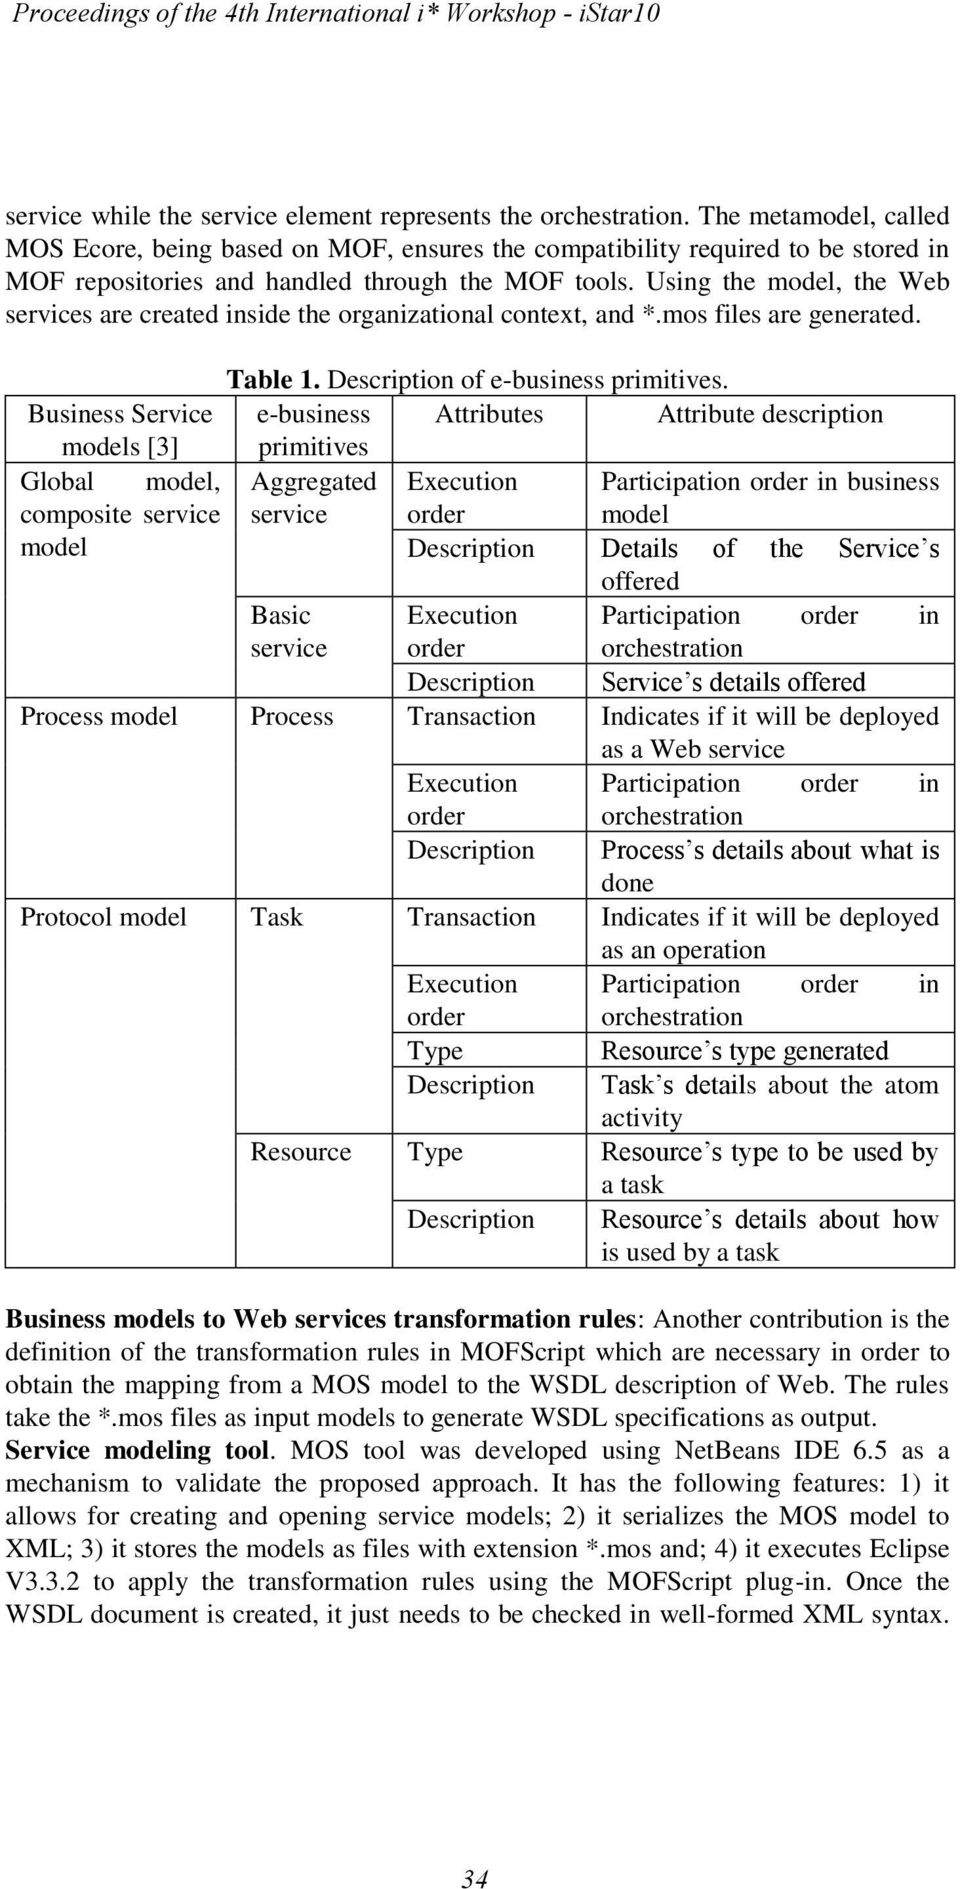 Using the model, the Web services are created inside the organizational context, and *.mos files are generated. Table 1. Description of e-business primitives.